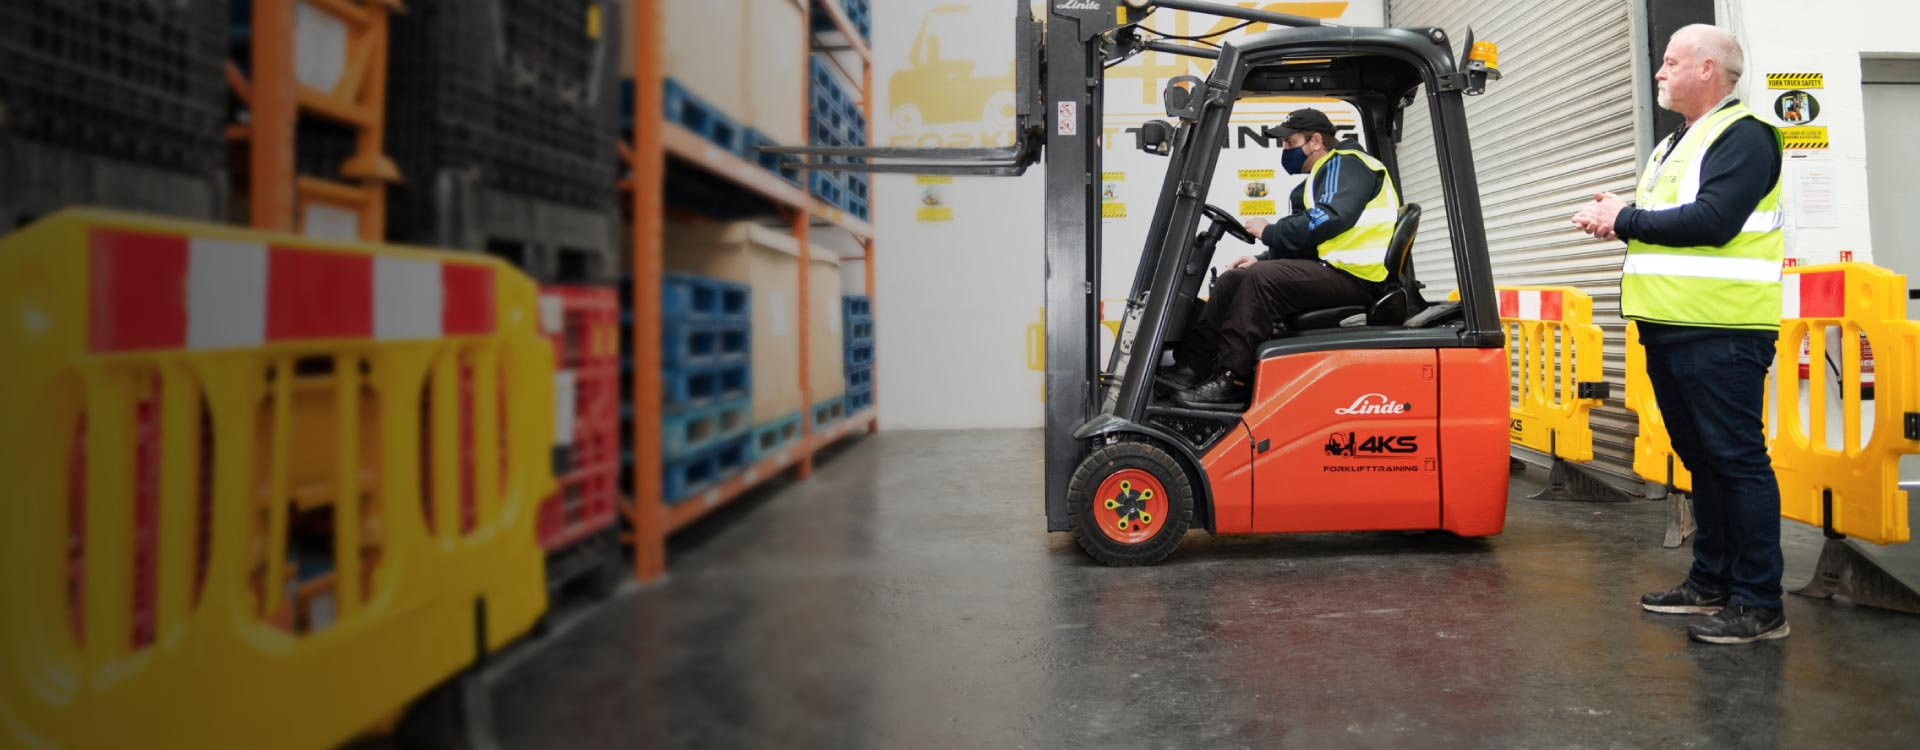 Forklift Instructor Course Birmingham Peterborough